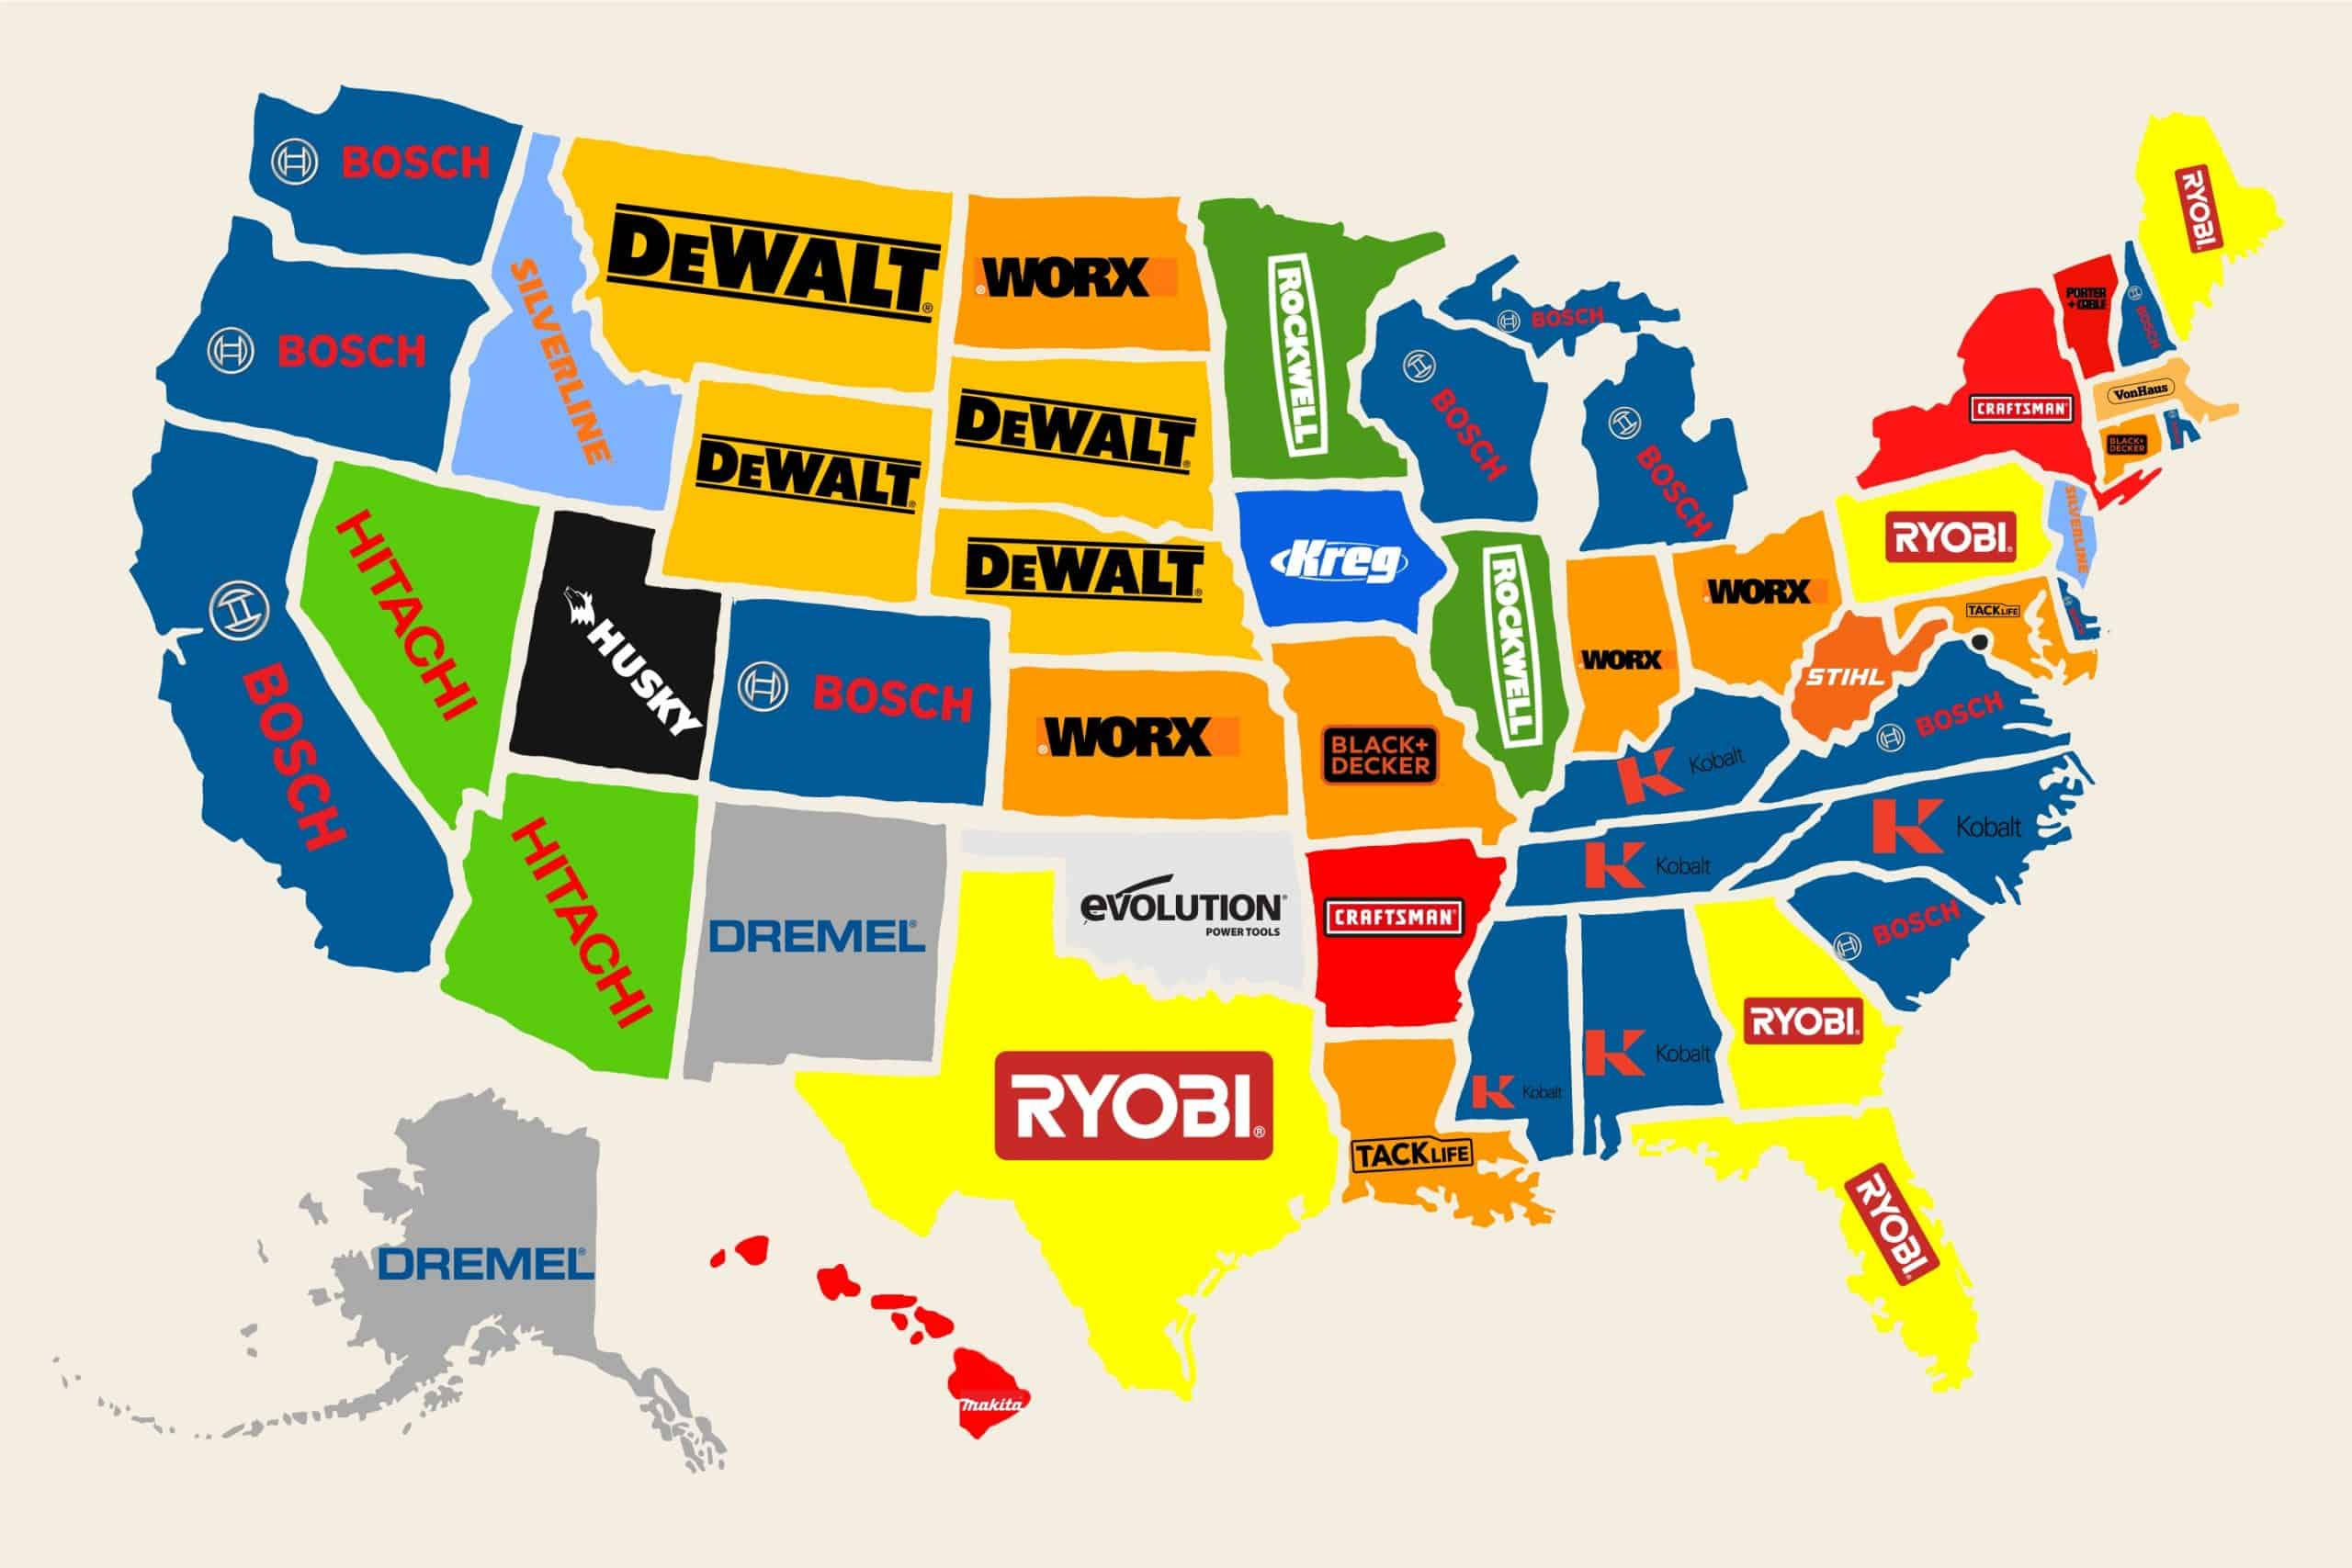 Power tool brand searches by state